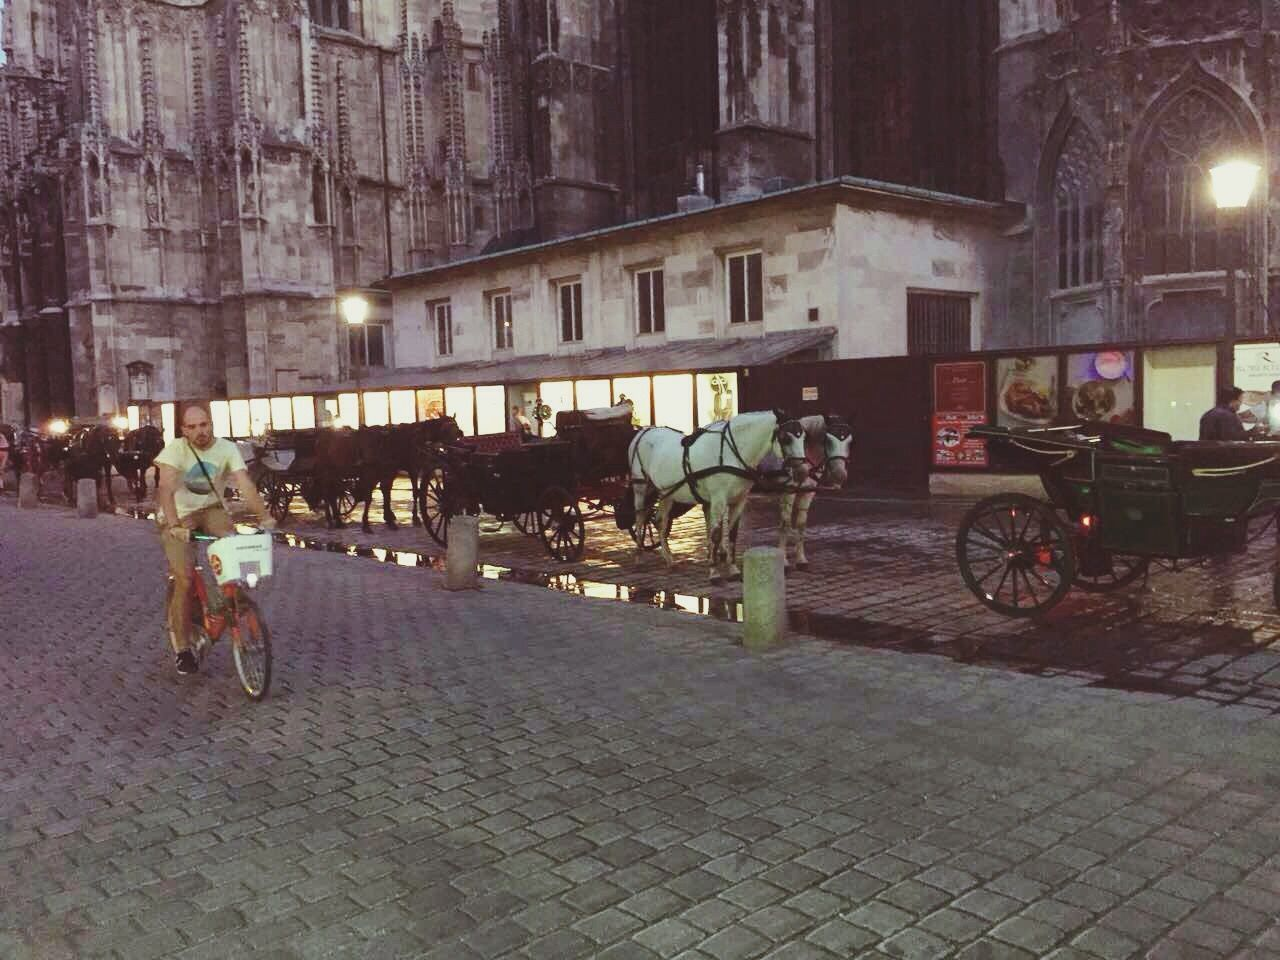 Horses Street Sity View Street View Street Photography Buildings Architecture Platz Horses Attraction People Carriage